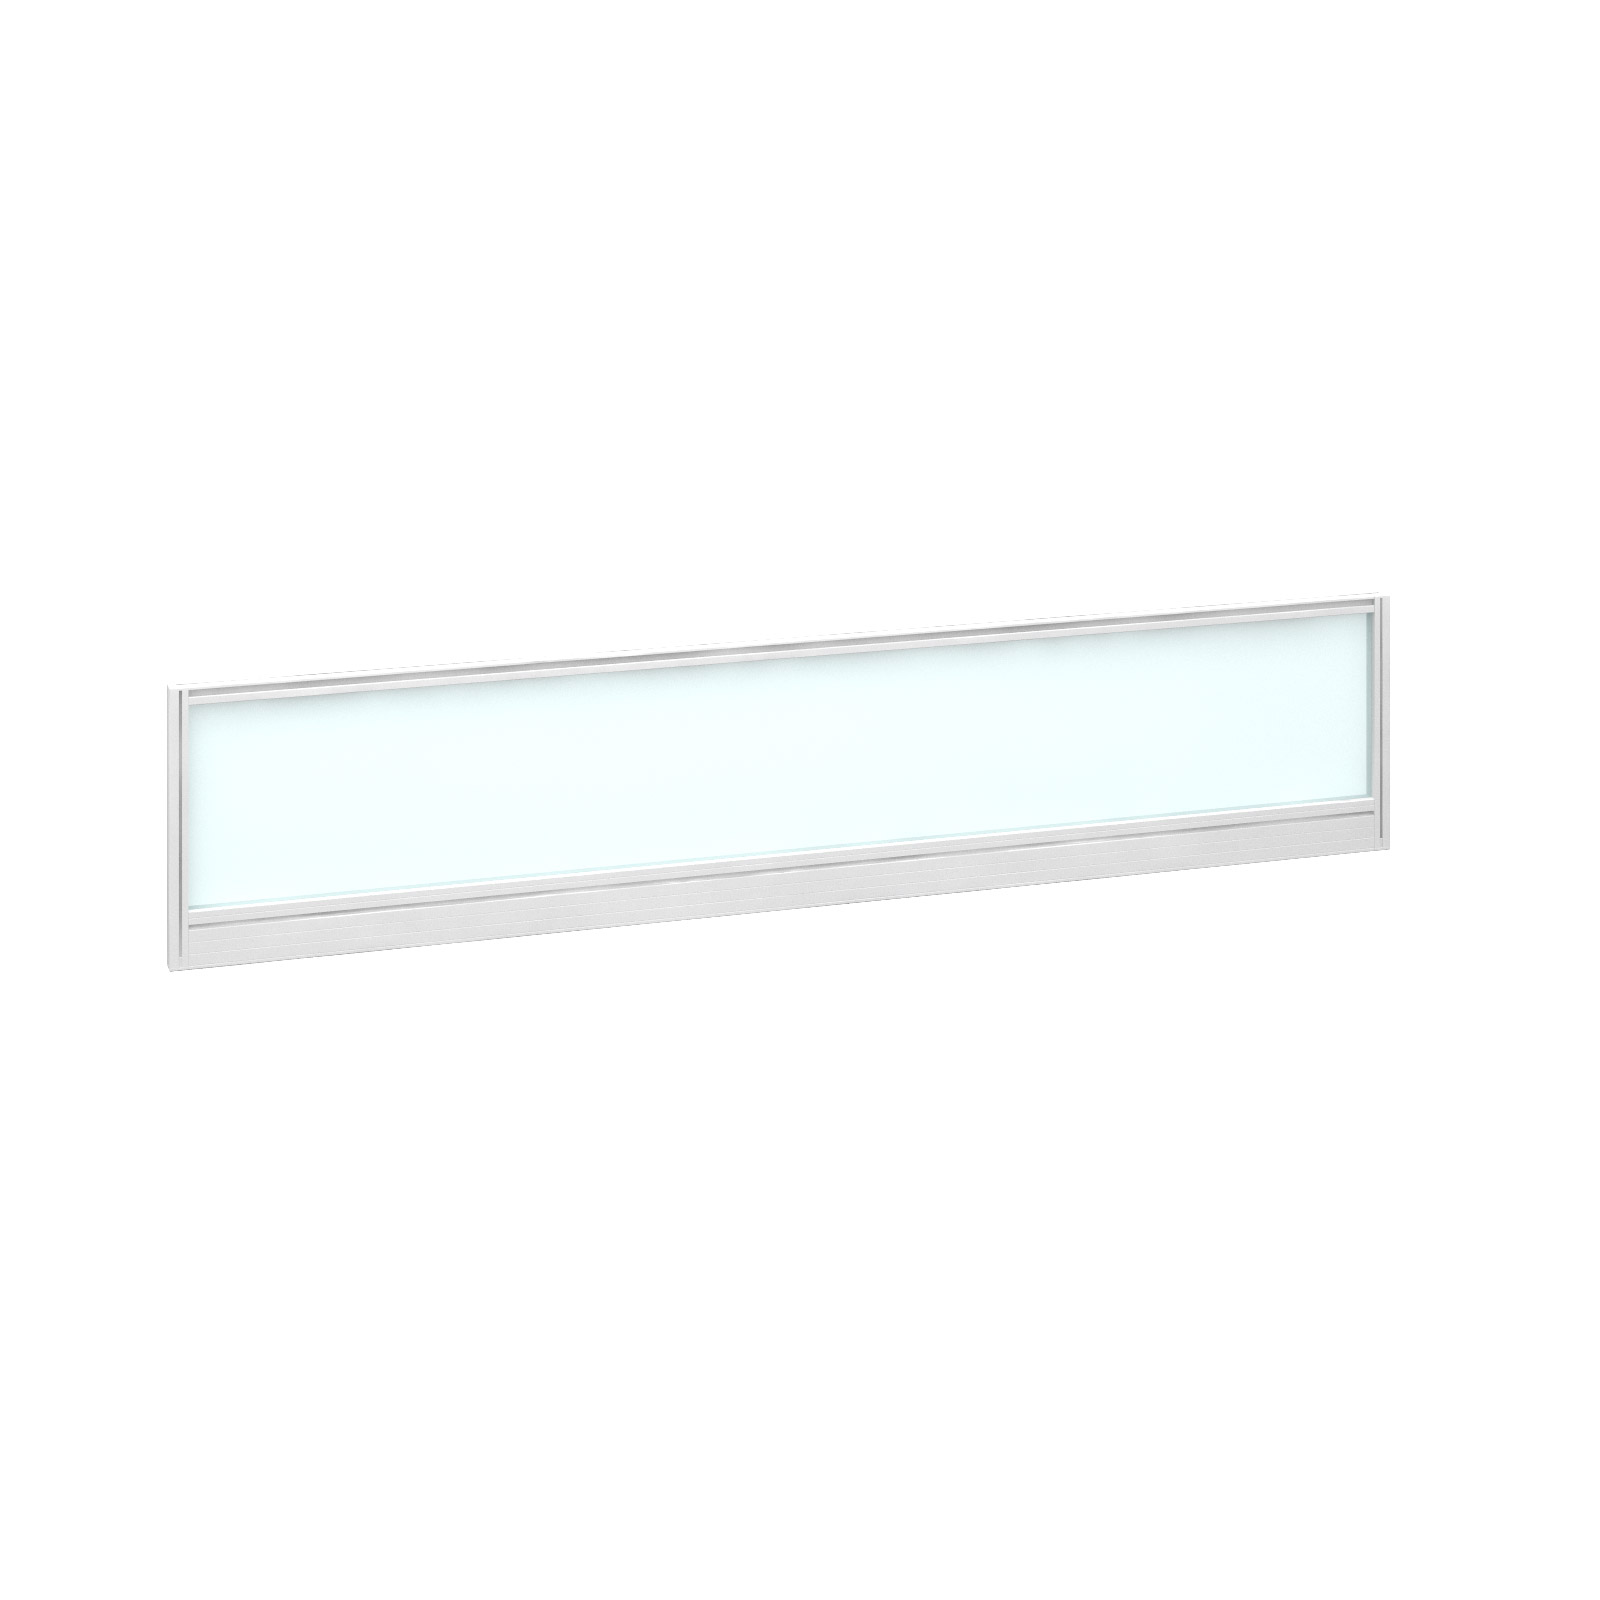 1800mm Deluxe Fully Glazed Rear Screen - White Frame - White Glazing